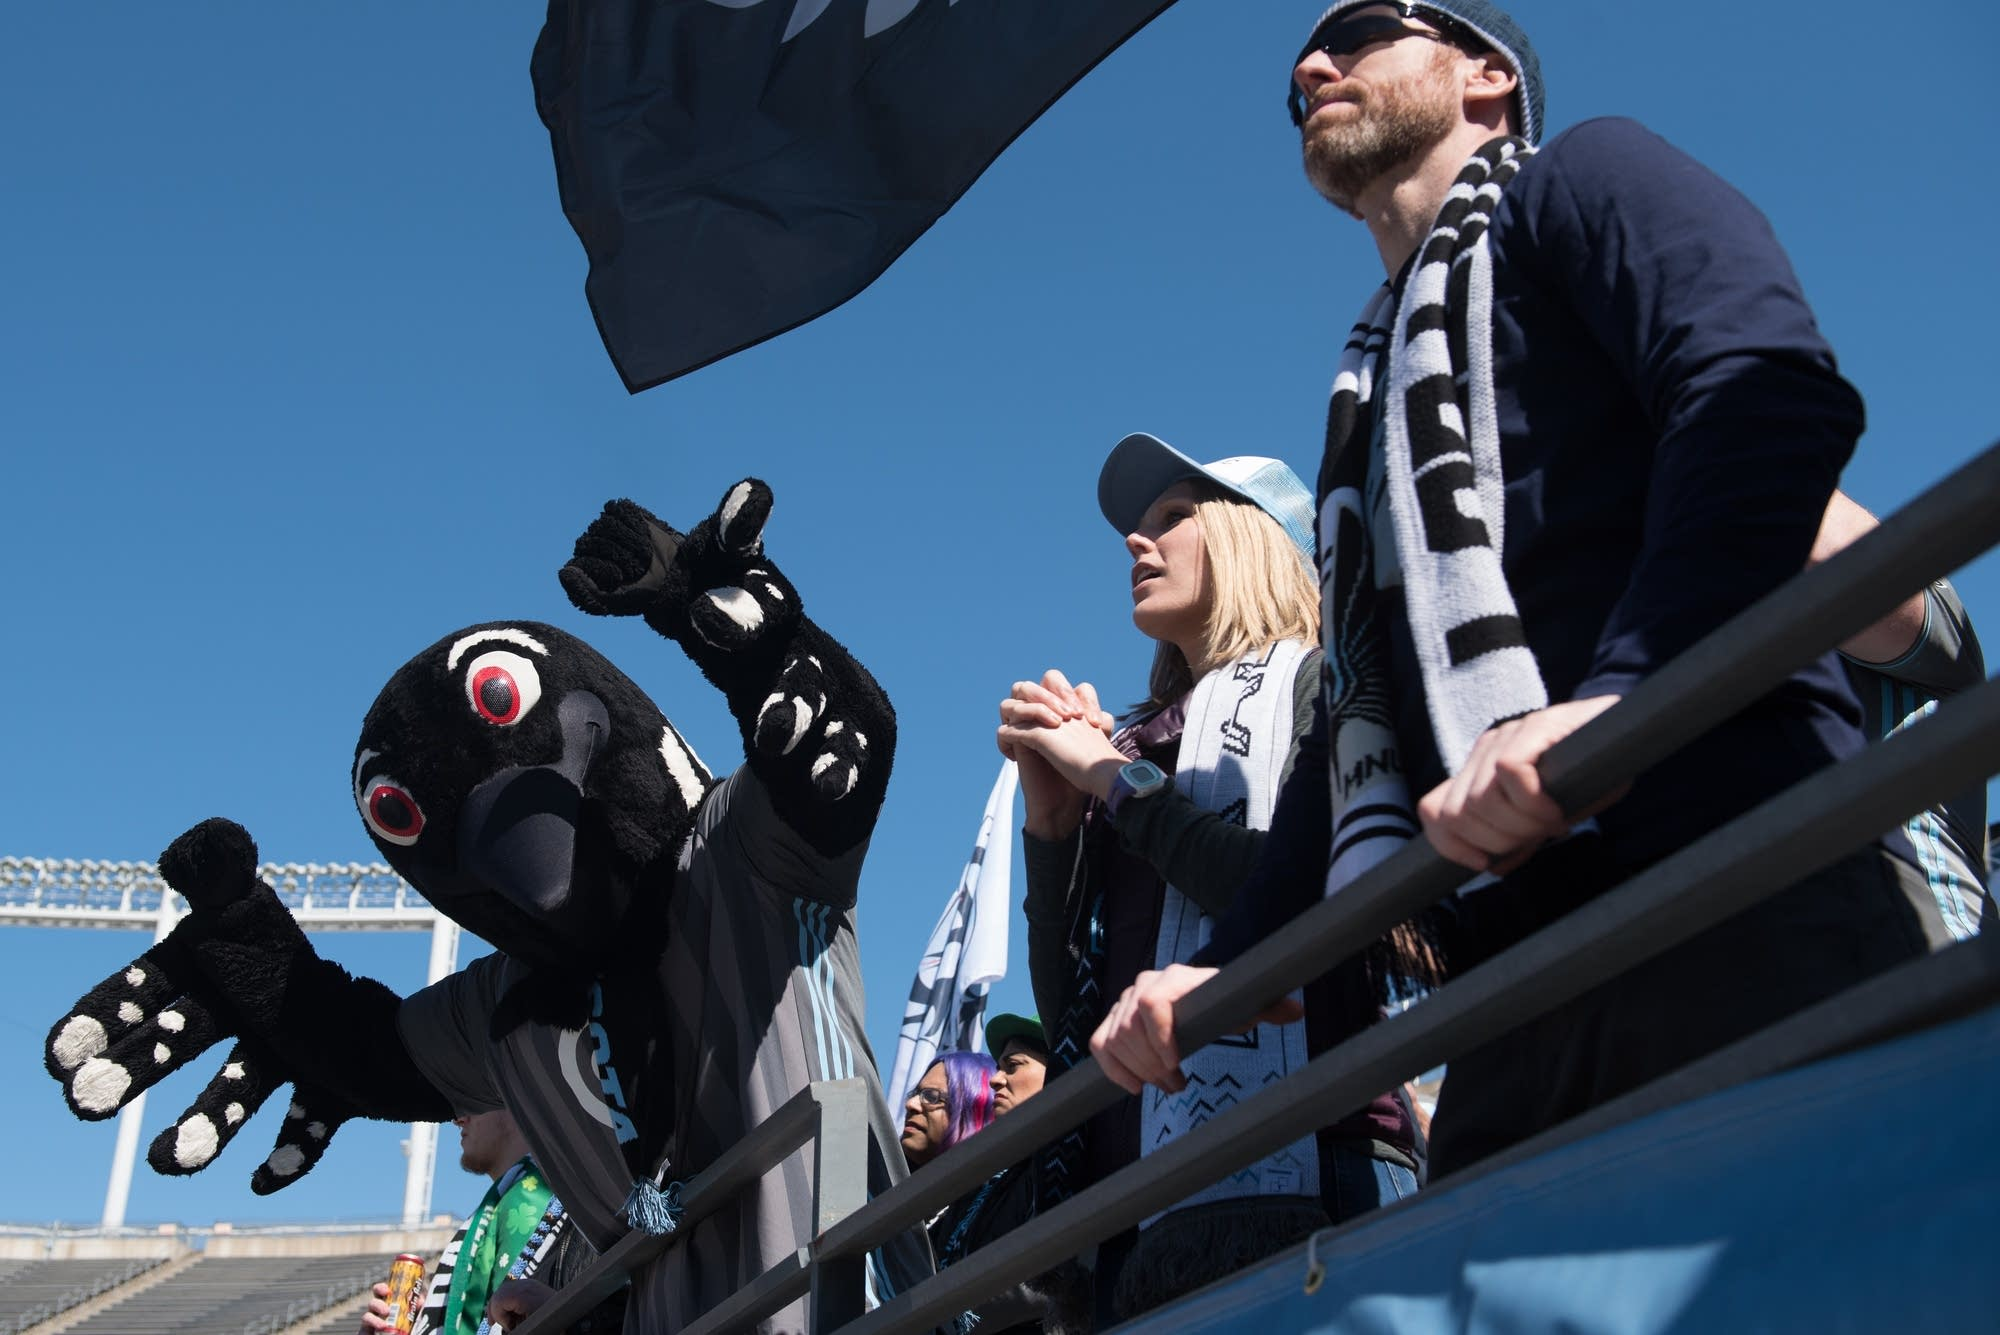 Fan groups are joined by the Minnesota Loon mascot.